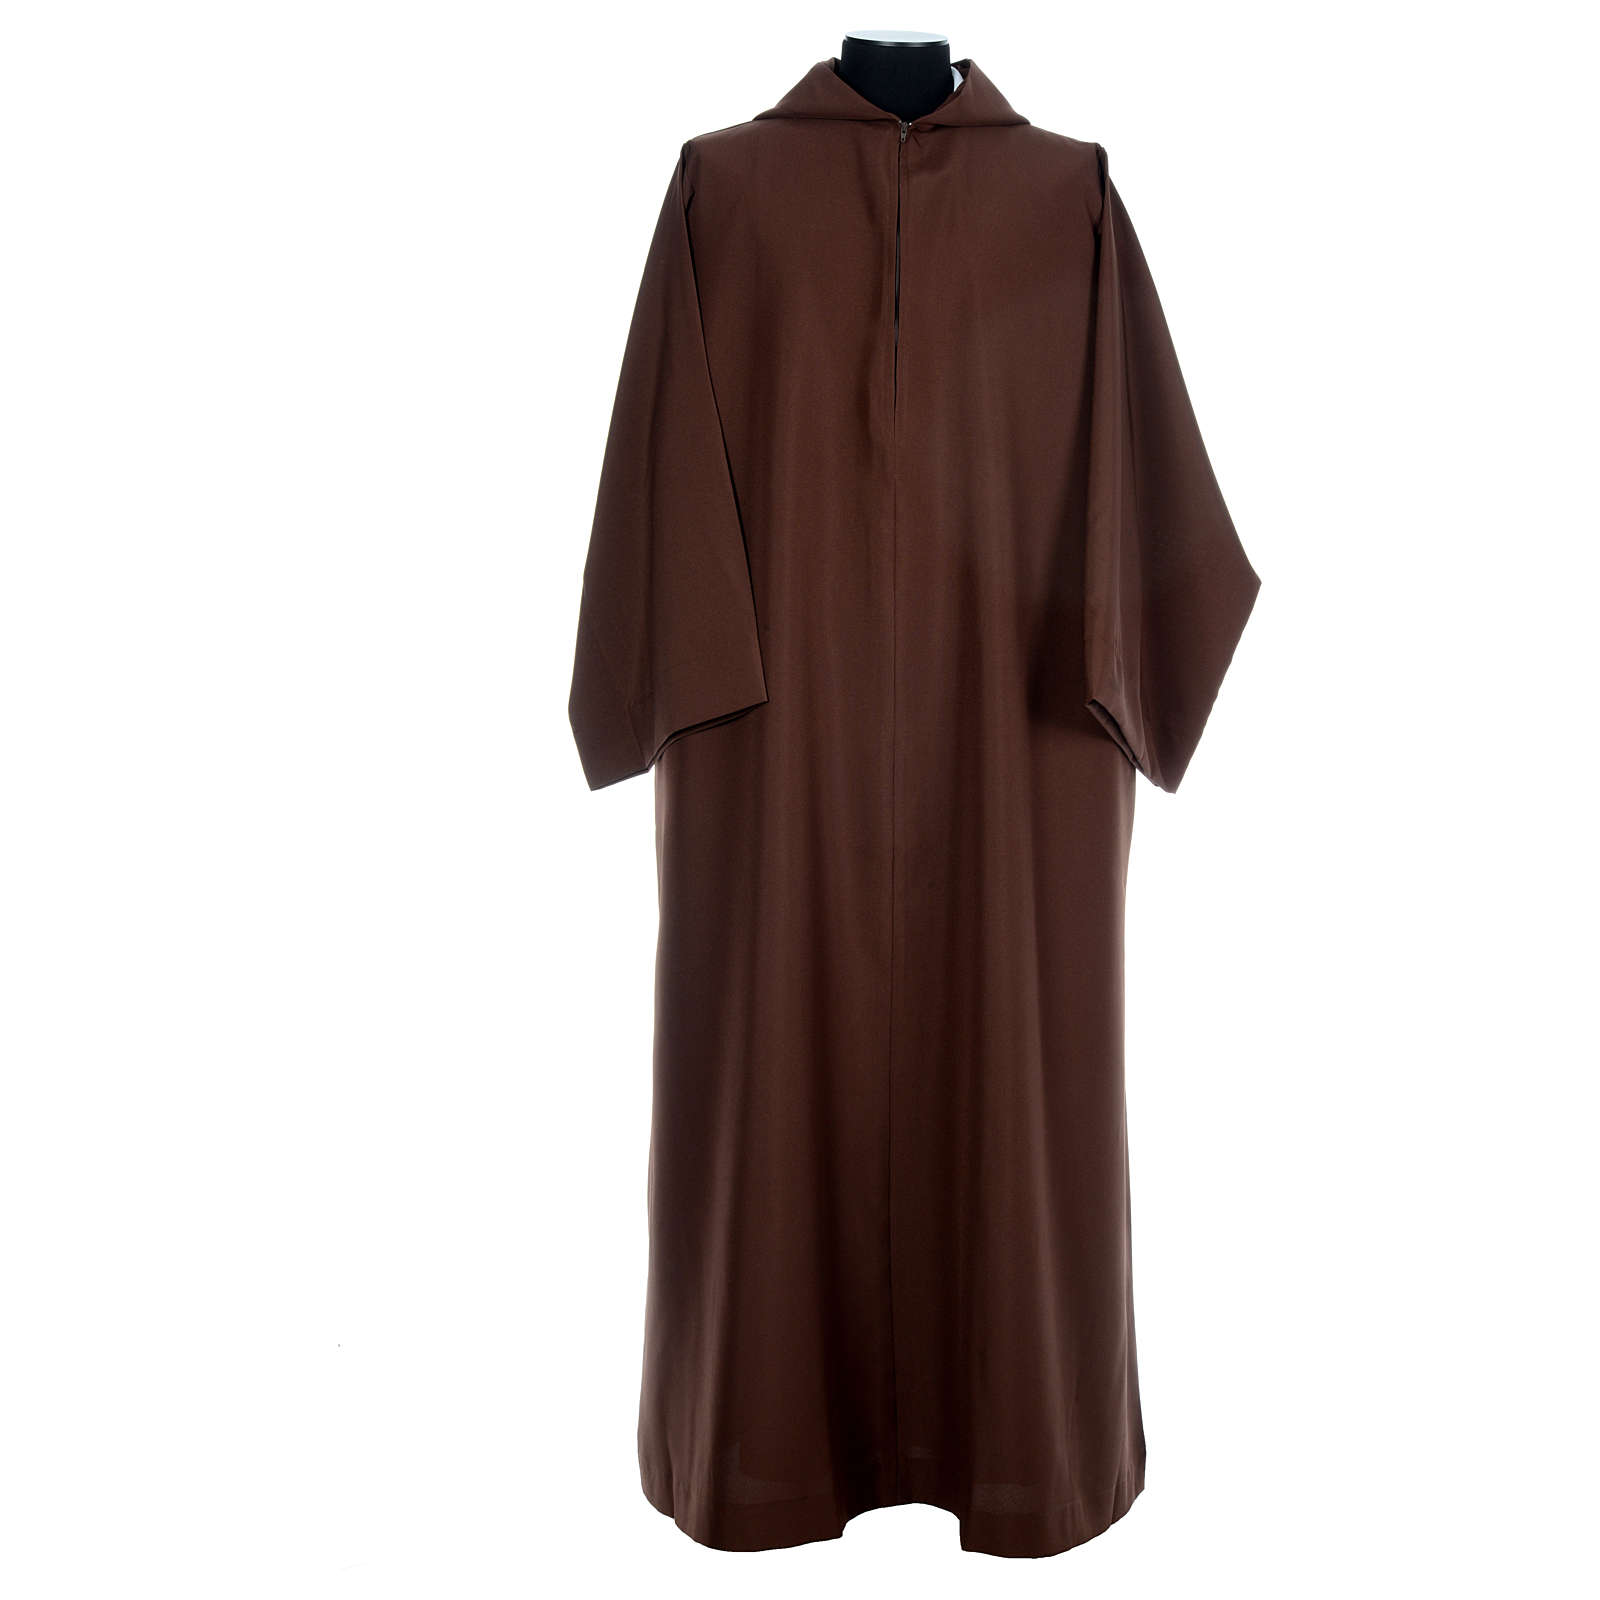 Franciscan brown alb in polyester with front zipper 4